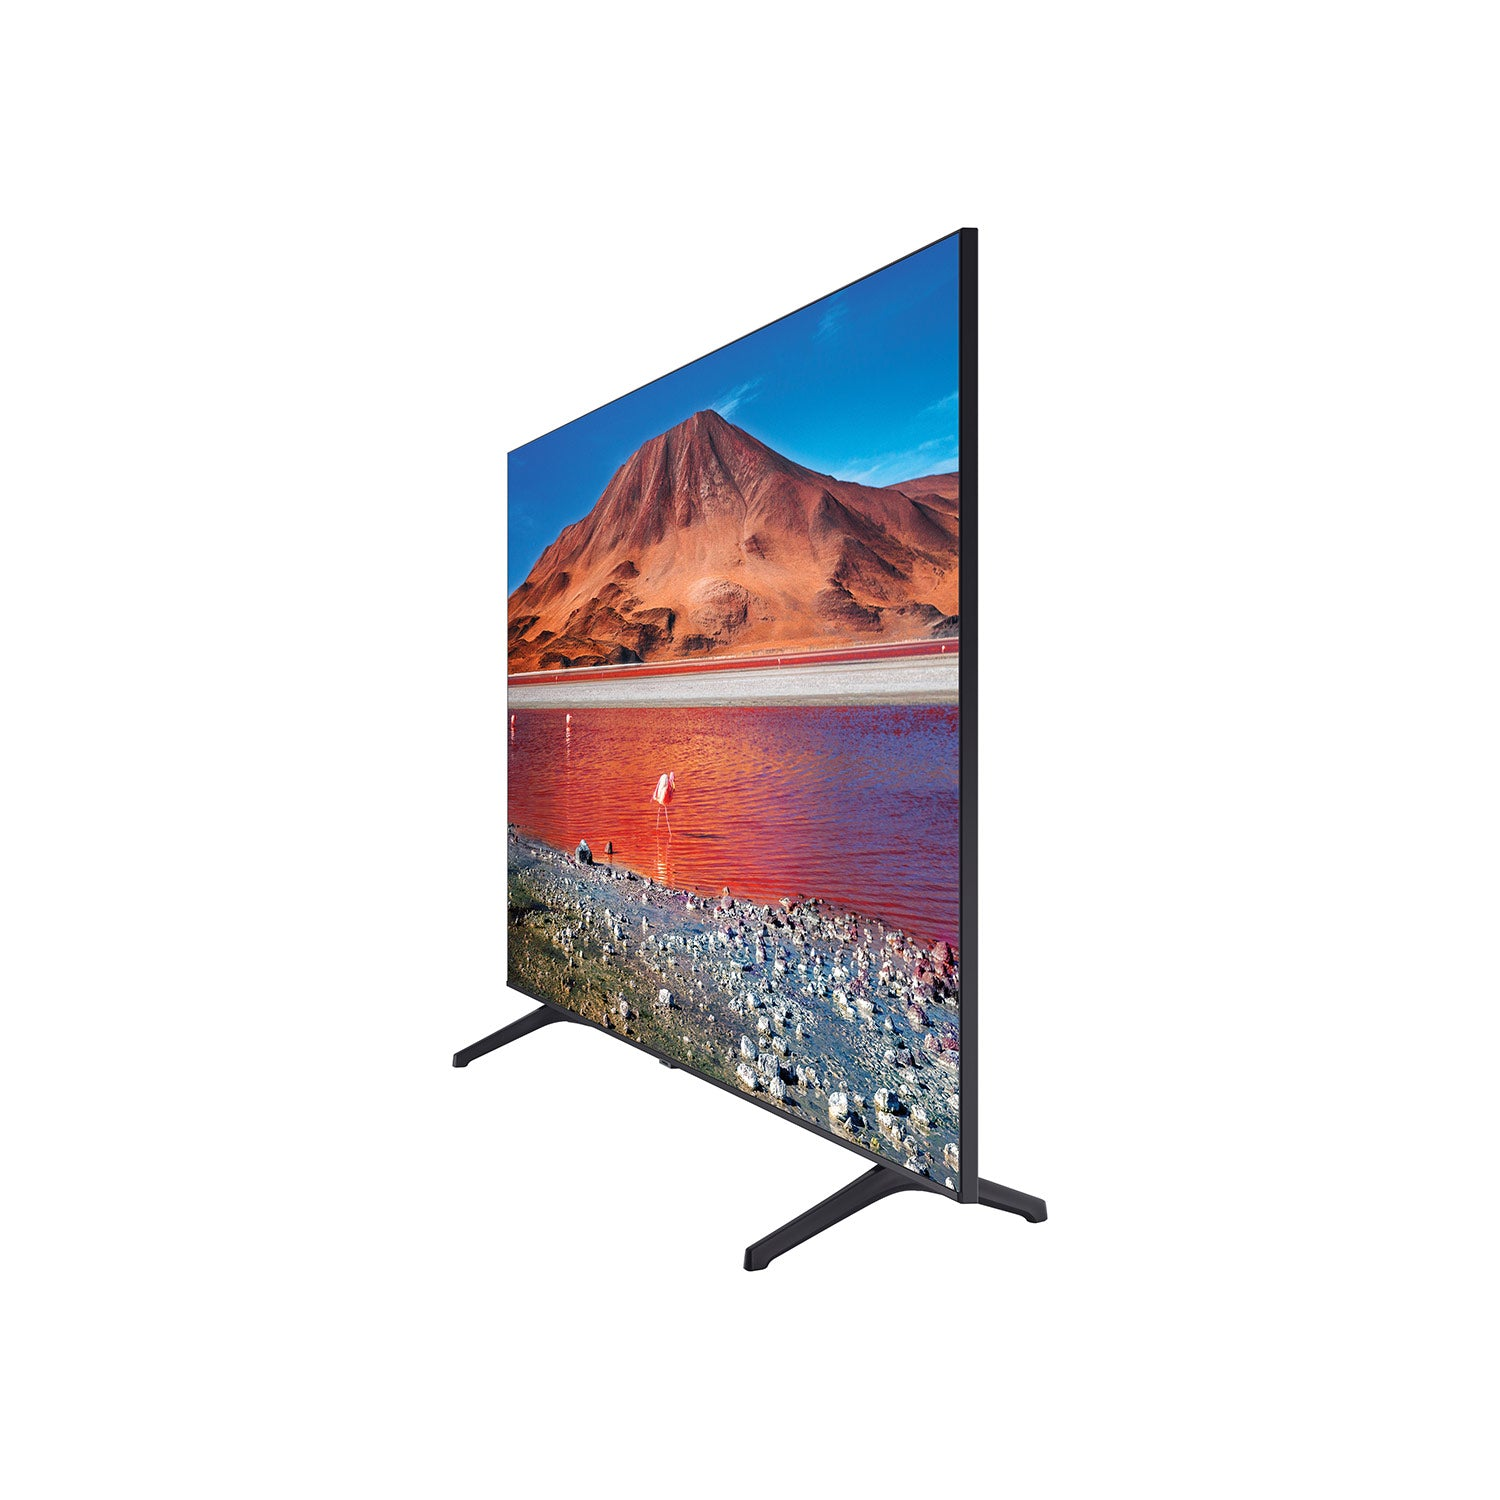 50-inch LED 4K UHD Smart TV